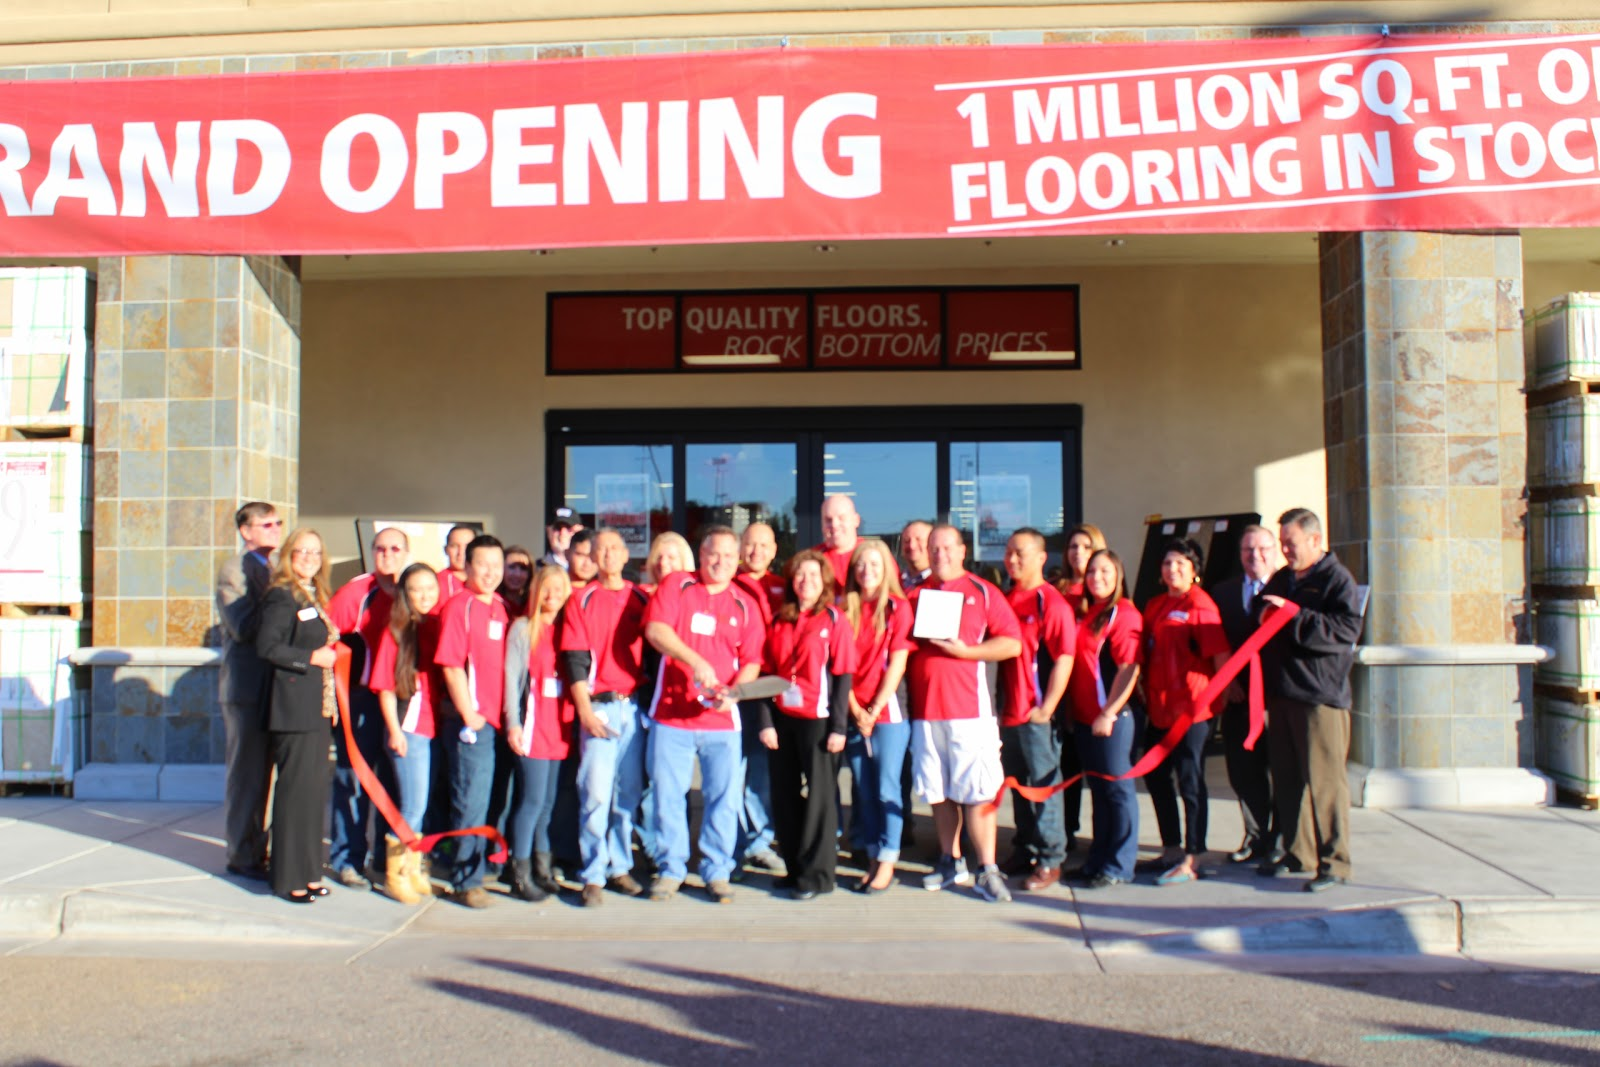 Floor & Decor is a leading specialty retailer in the hard surface flooring market, offering the broadest selection of ceramic, stone, tile, wood and laminate.  Floor & Decor buys direct so you save.  Each store stocks 1 million square feet of products at all times.